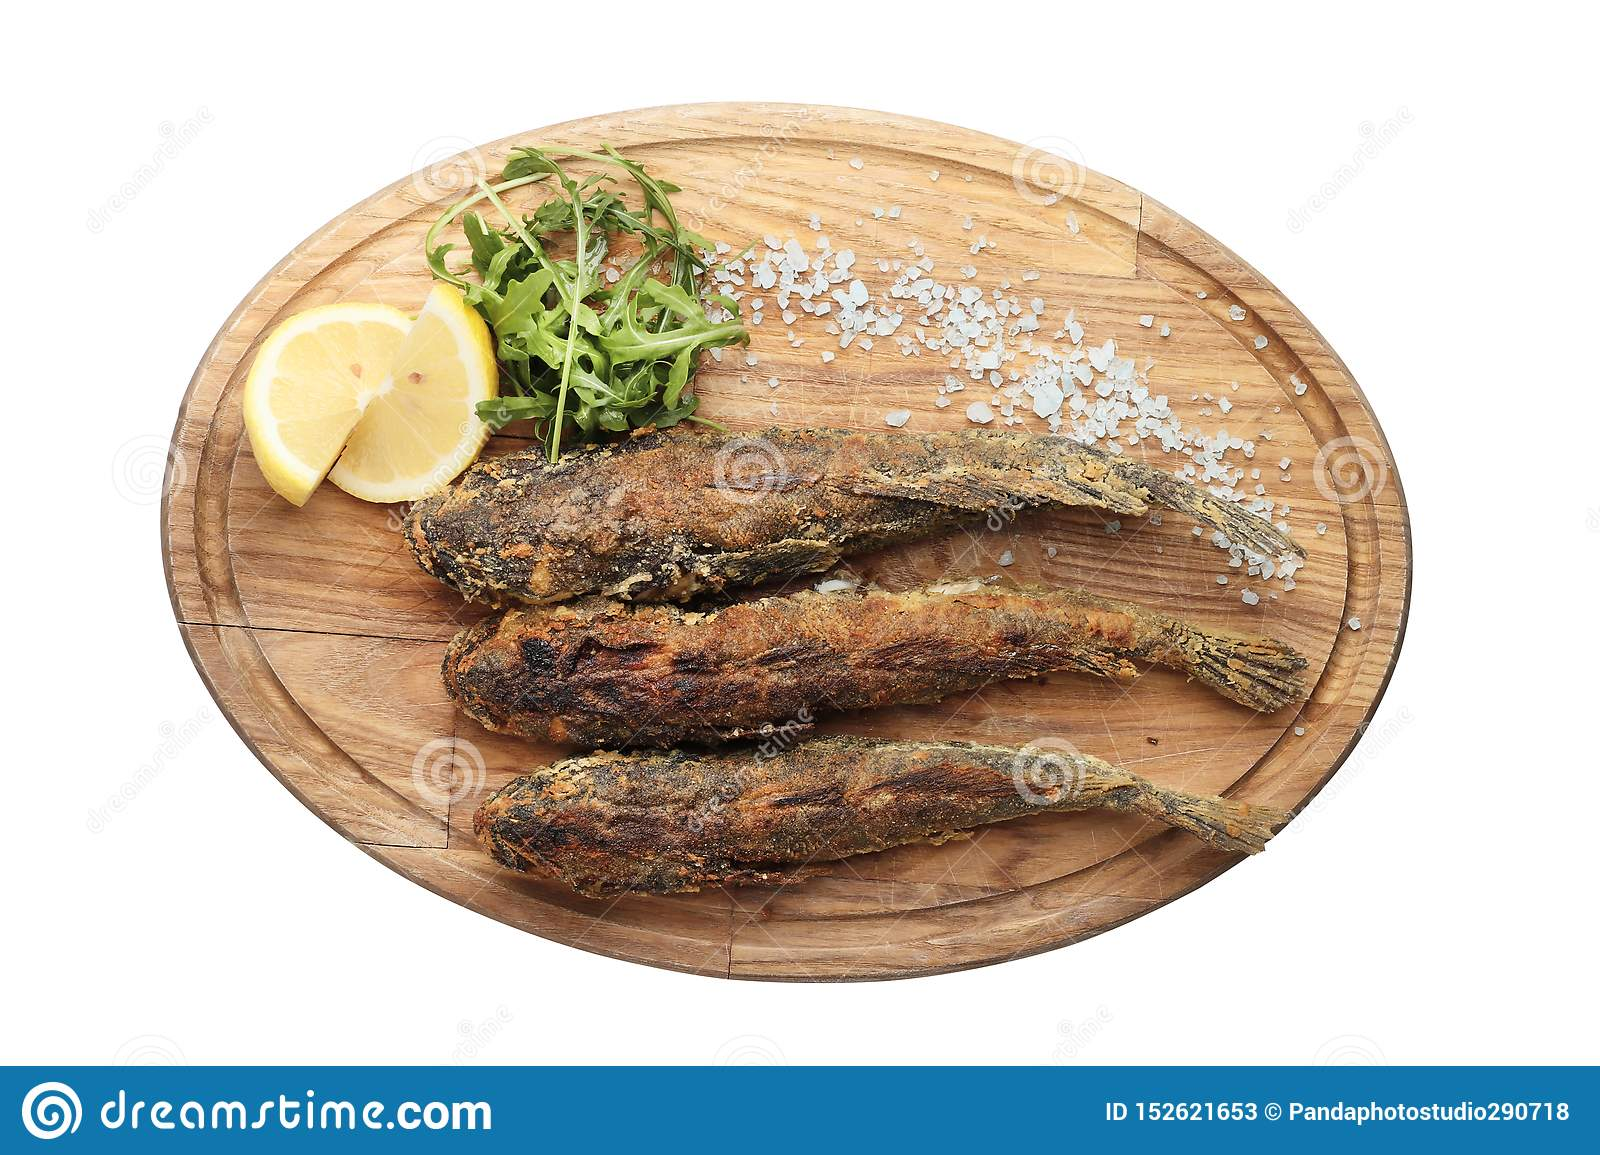 Fried fish on a wooden board isolated on white background